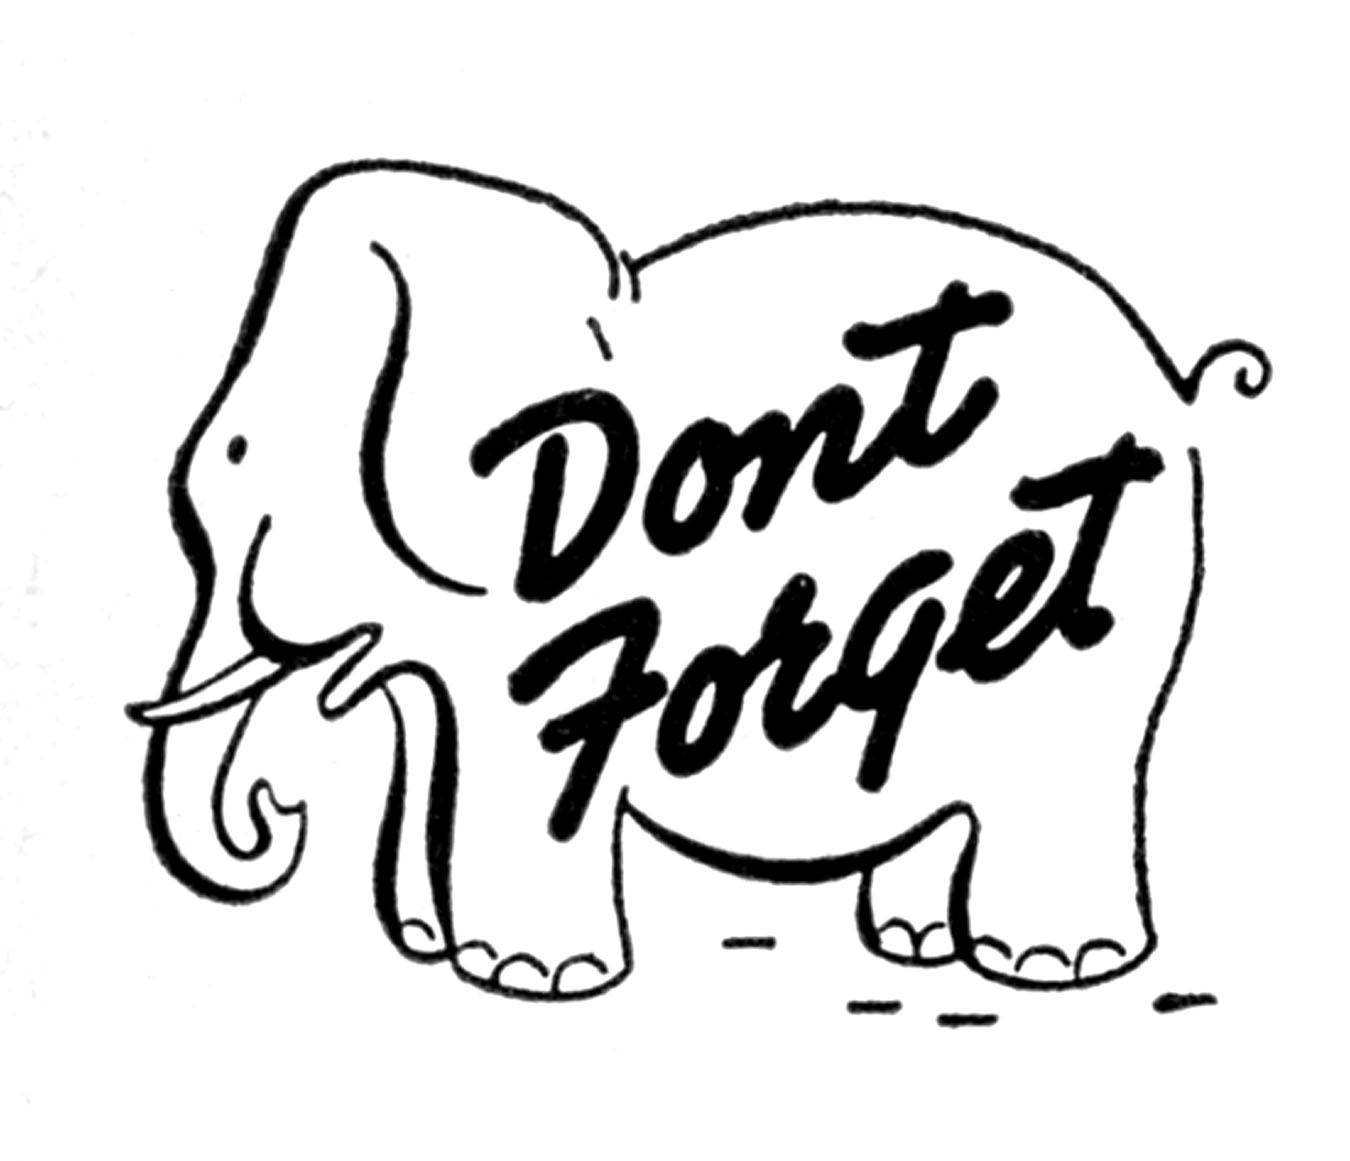 Free Cliparts Class Reminders Download Free Clip Art